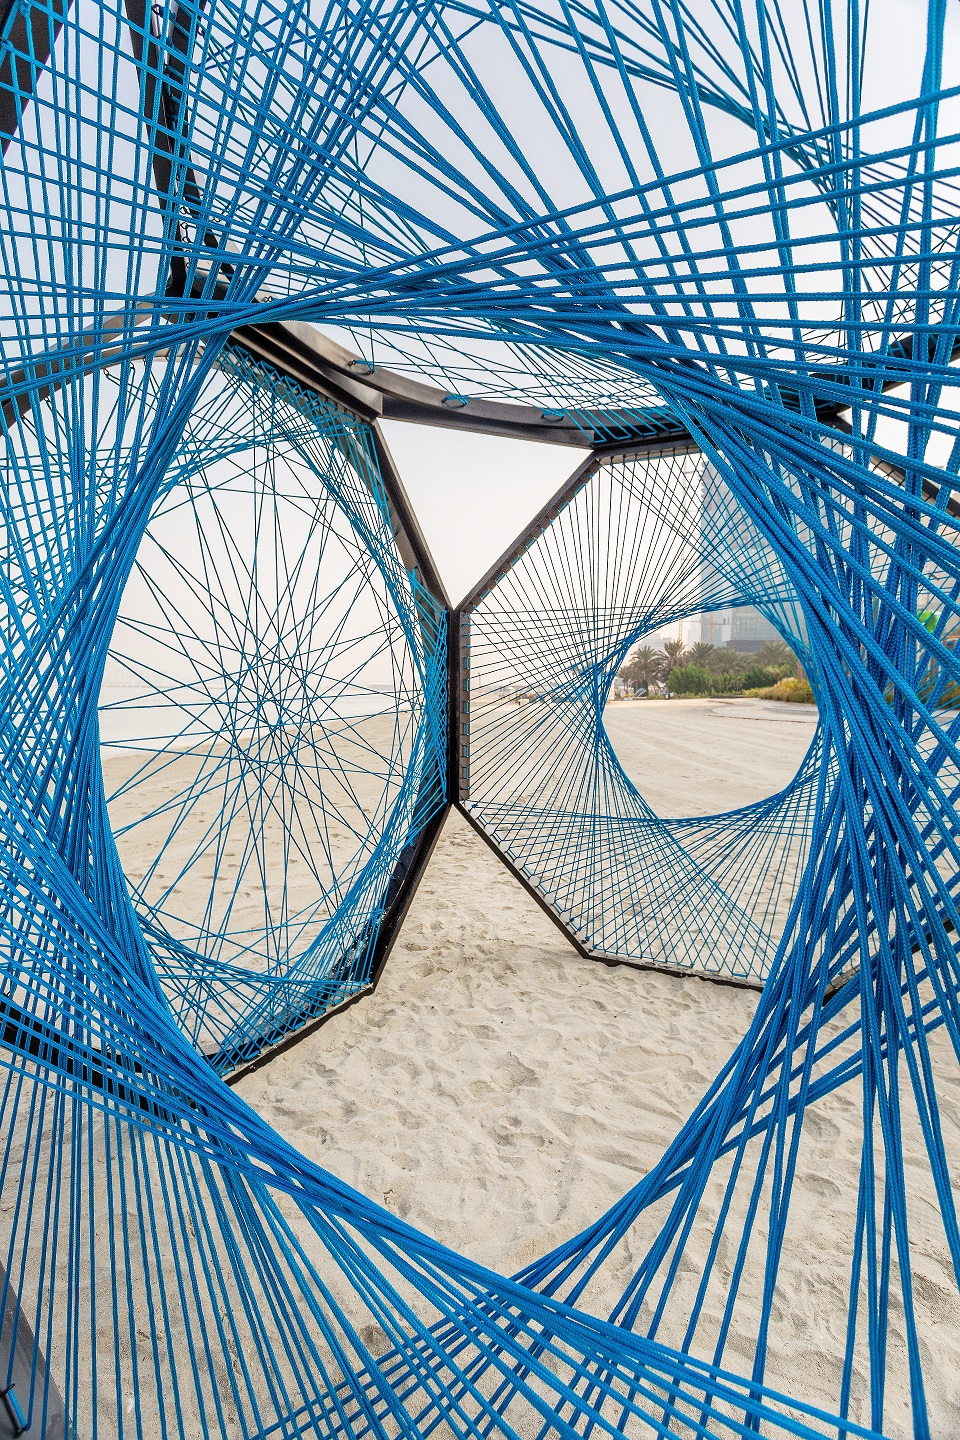 Dubai Design Week_Installations_Aljoud Lootah_Yaroof_JBR THE BEACH_7